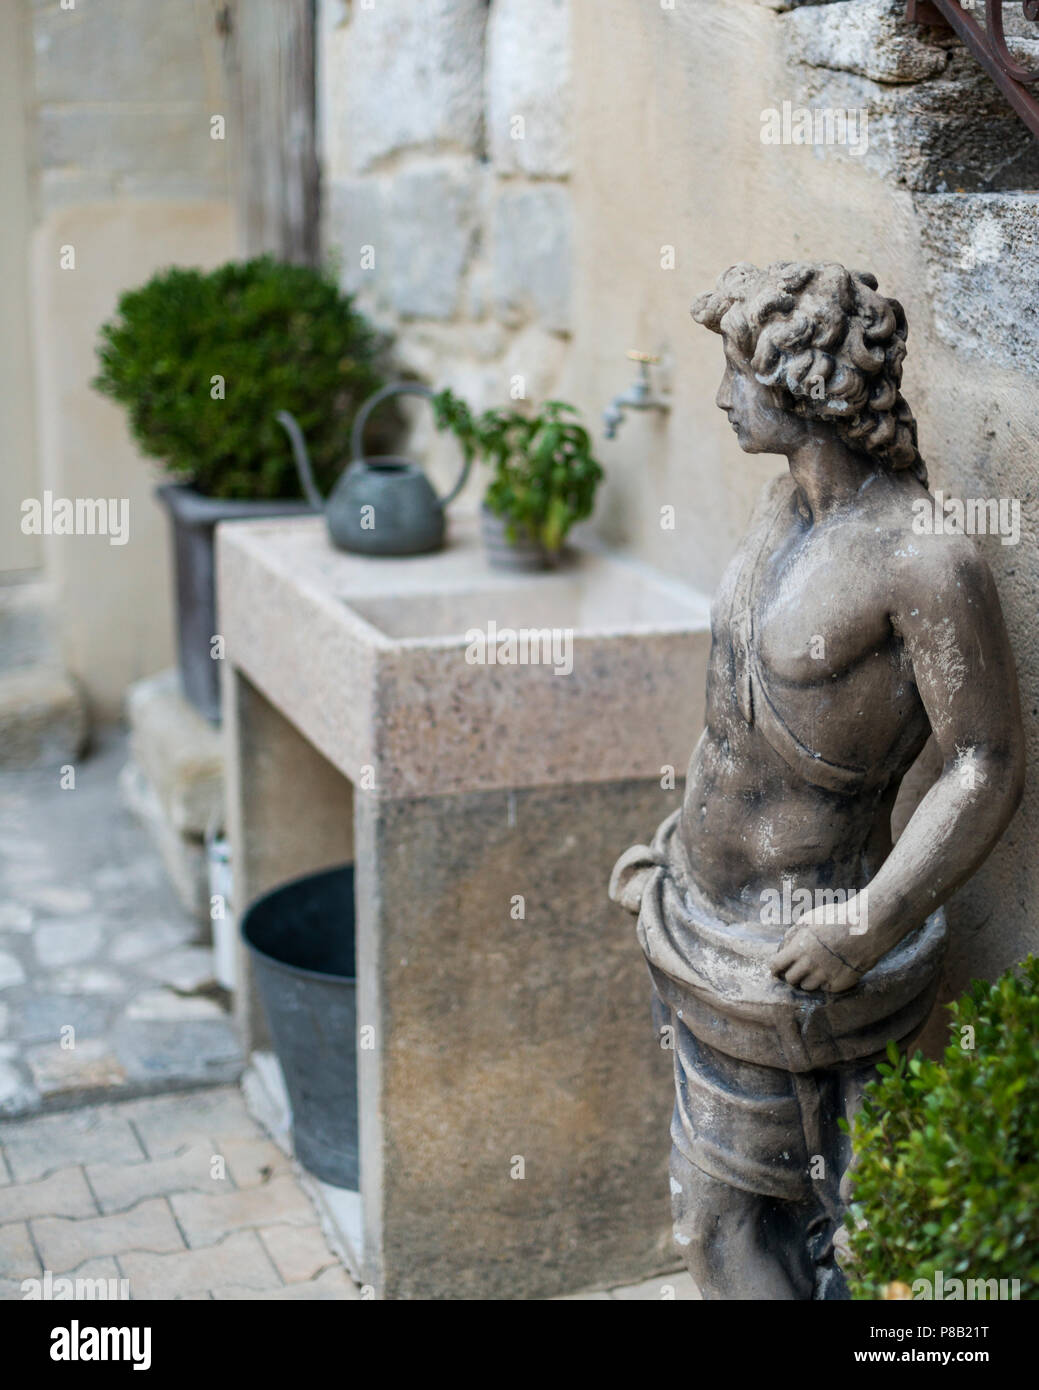 Classical statue and garden sink in curtyard of 18th century olive mill conversion - Stock Image